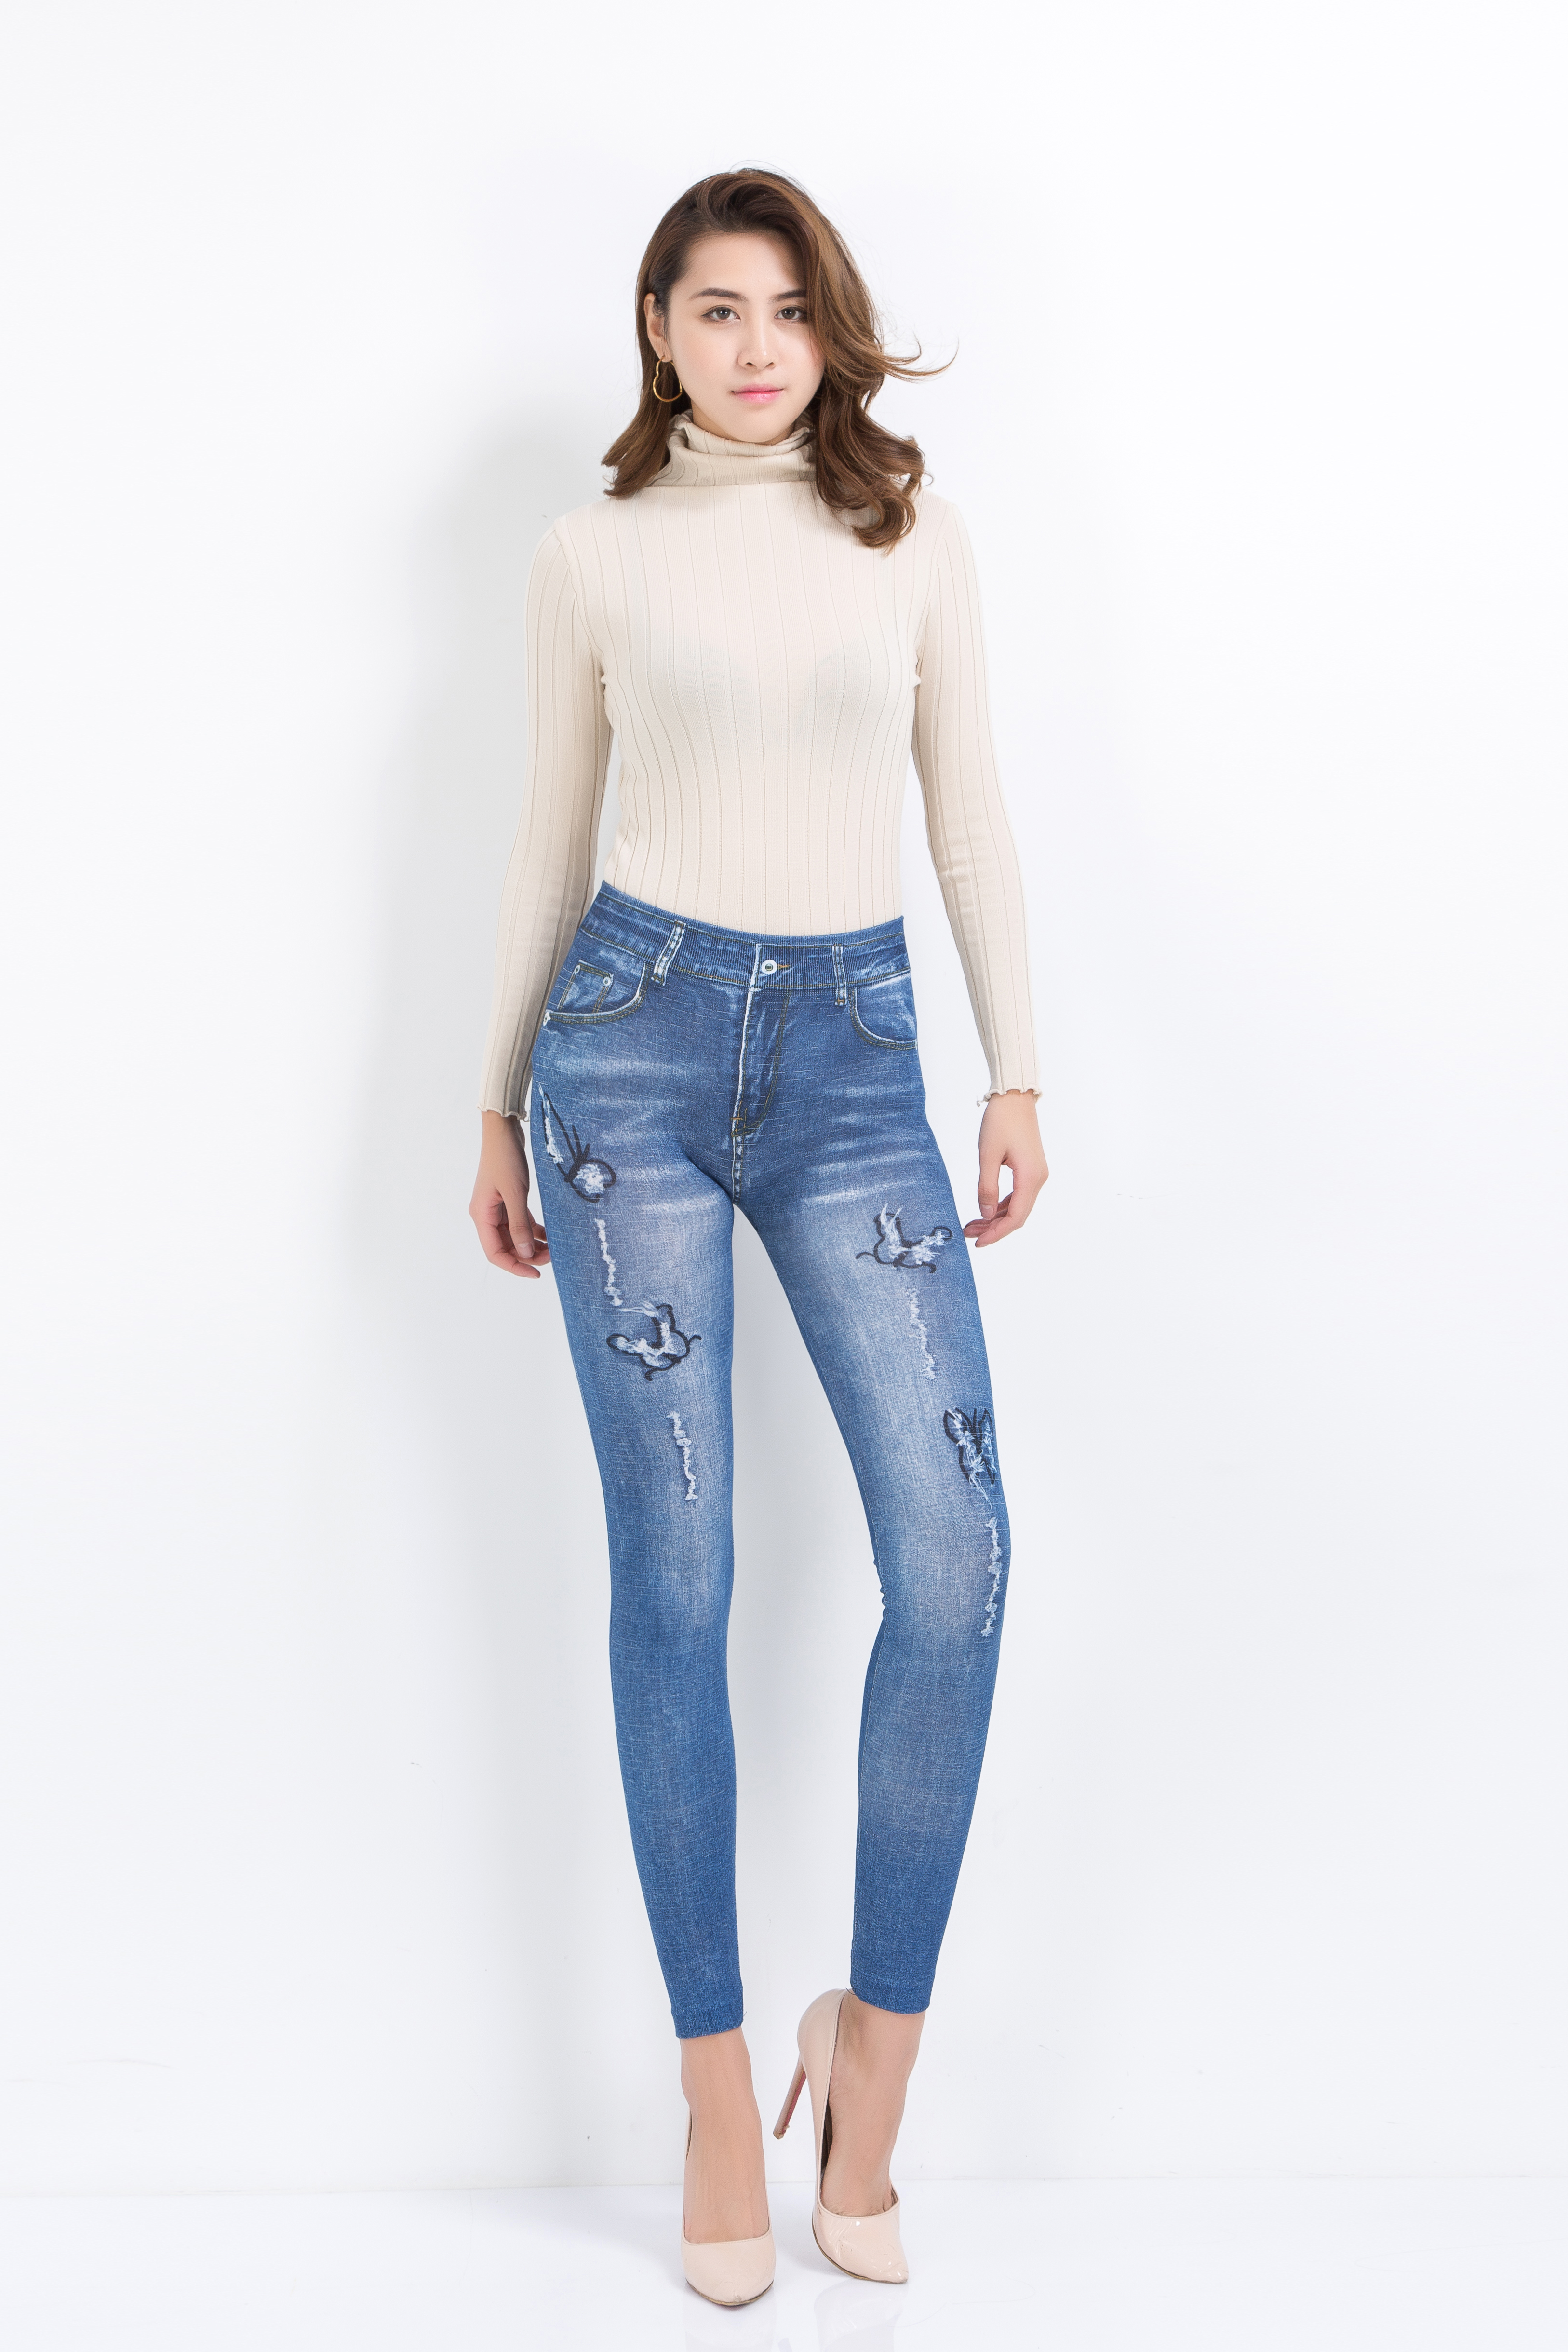 Leggings for women elastic and sexy OEMEN LR669 4 jeans butterfly pattern shipping from Russia